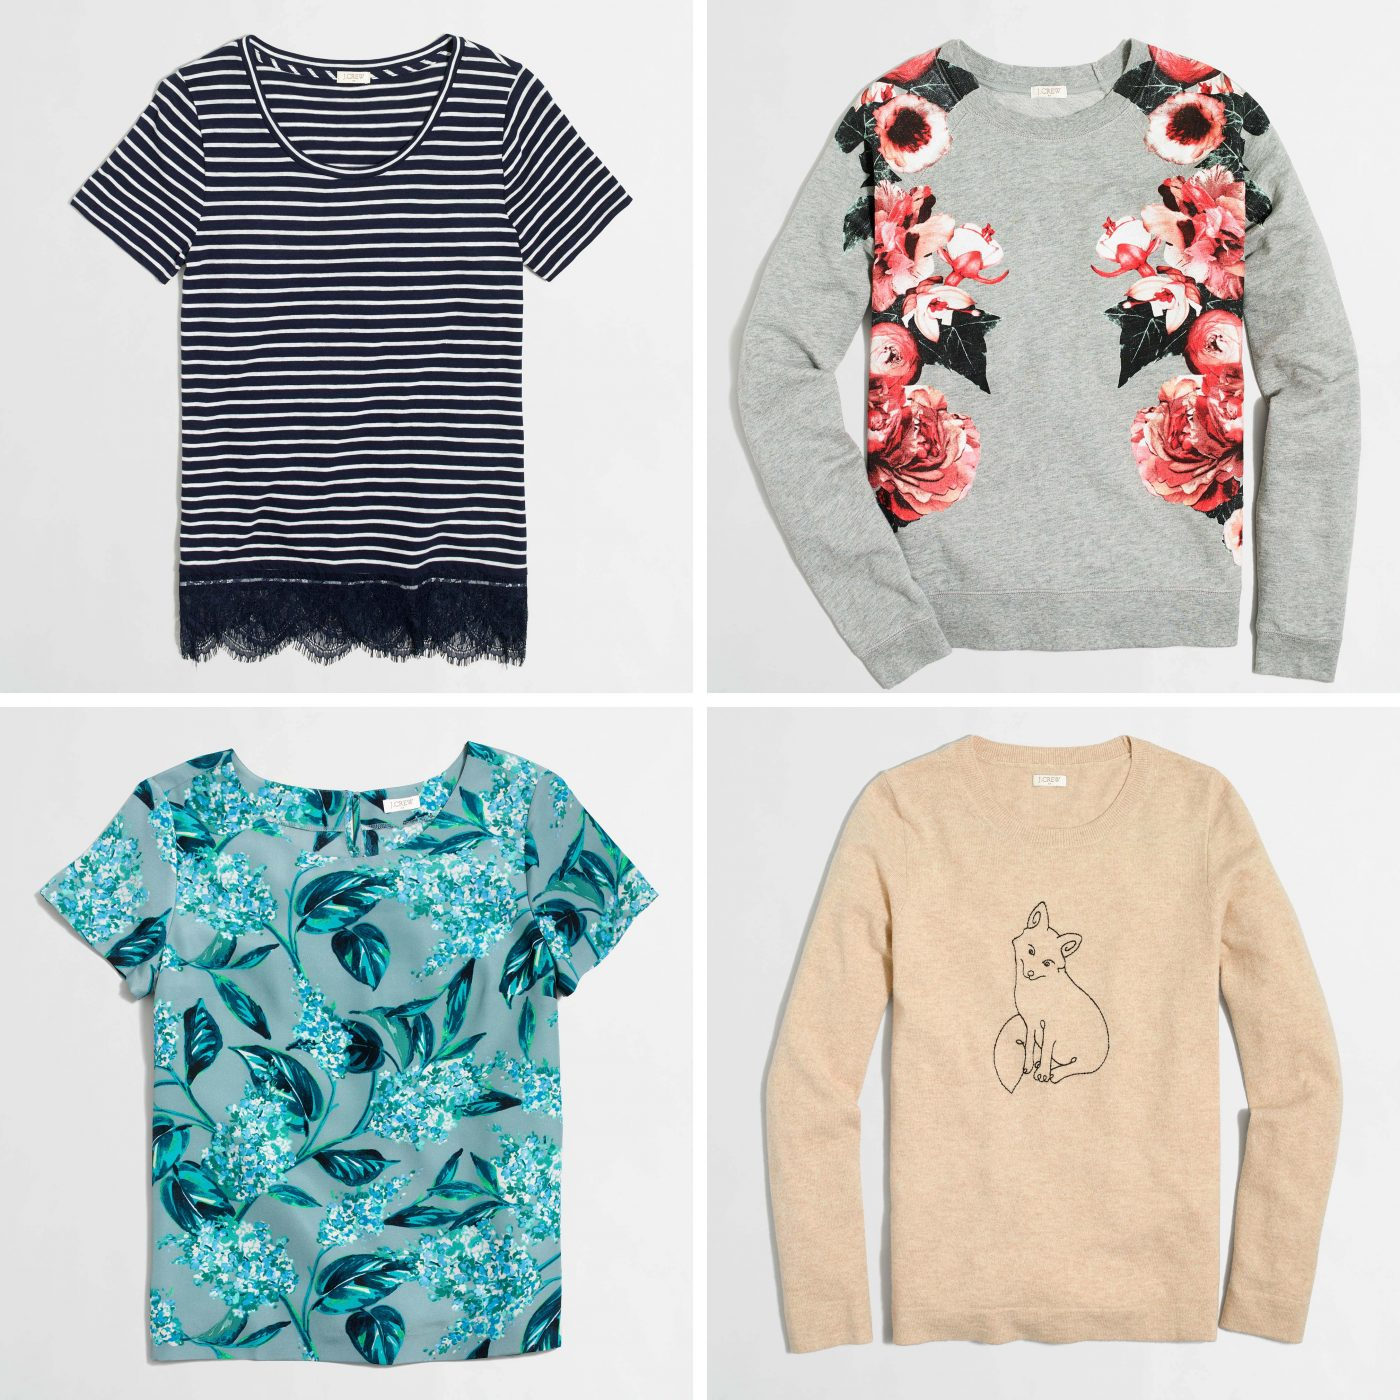 floral tees and quirky sweaters